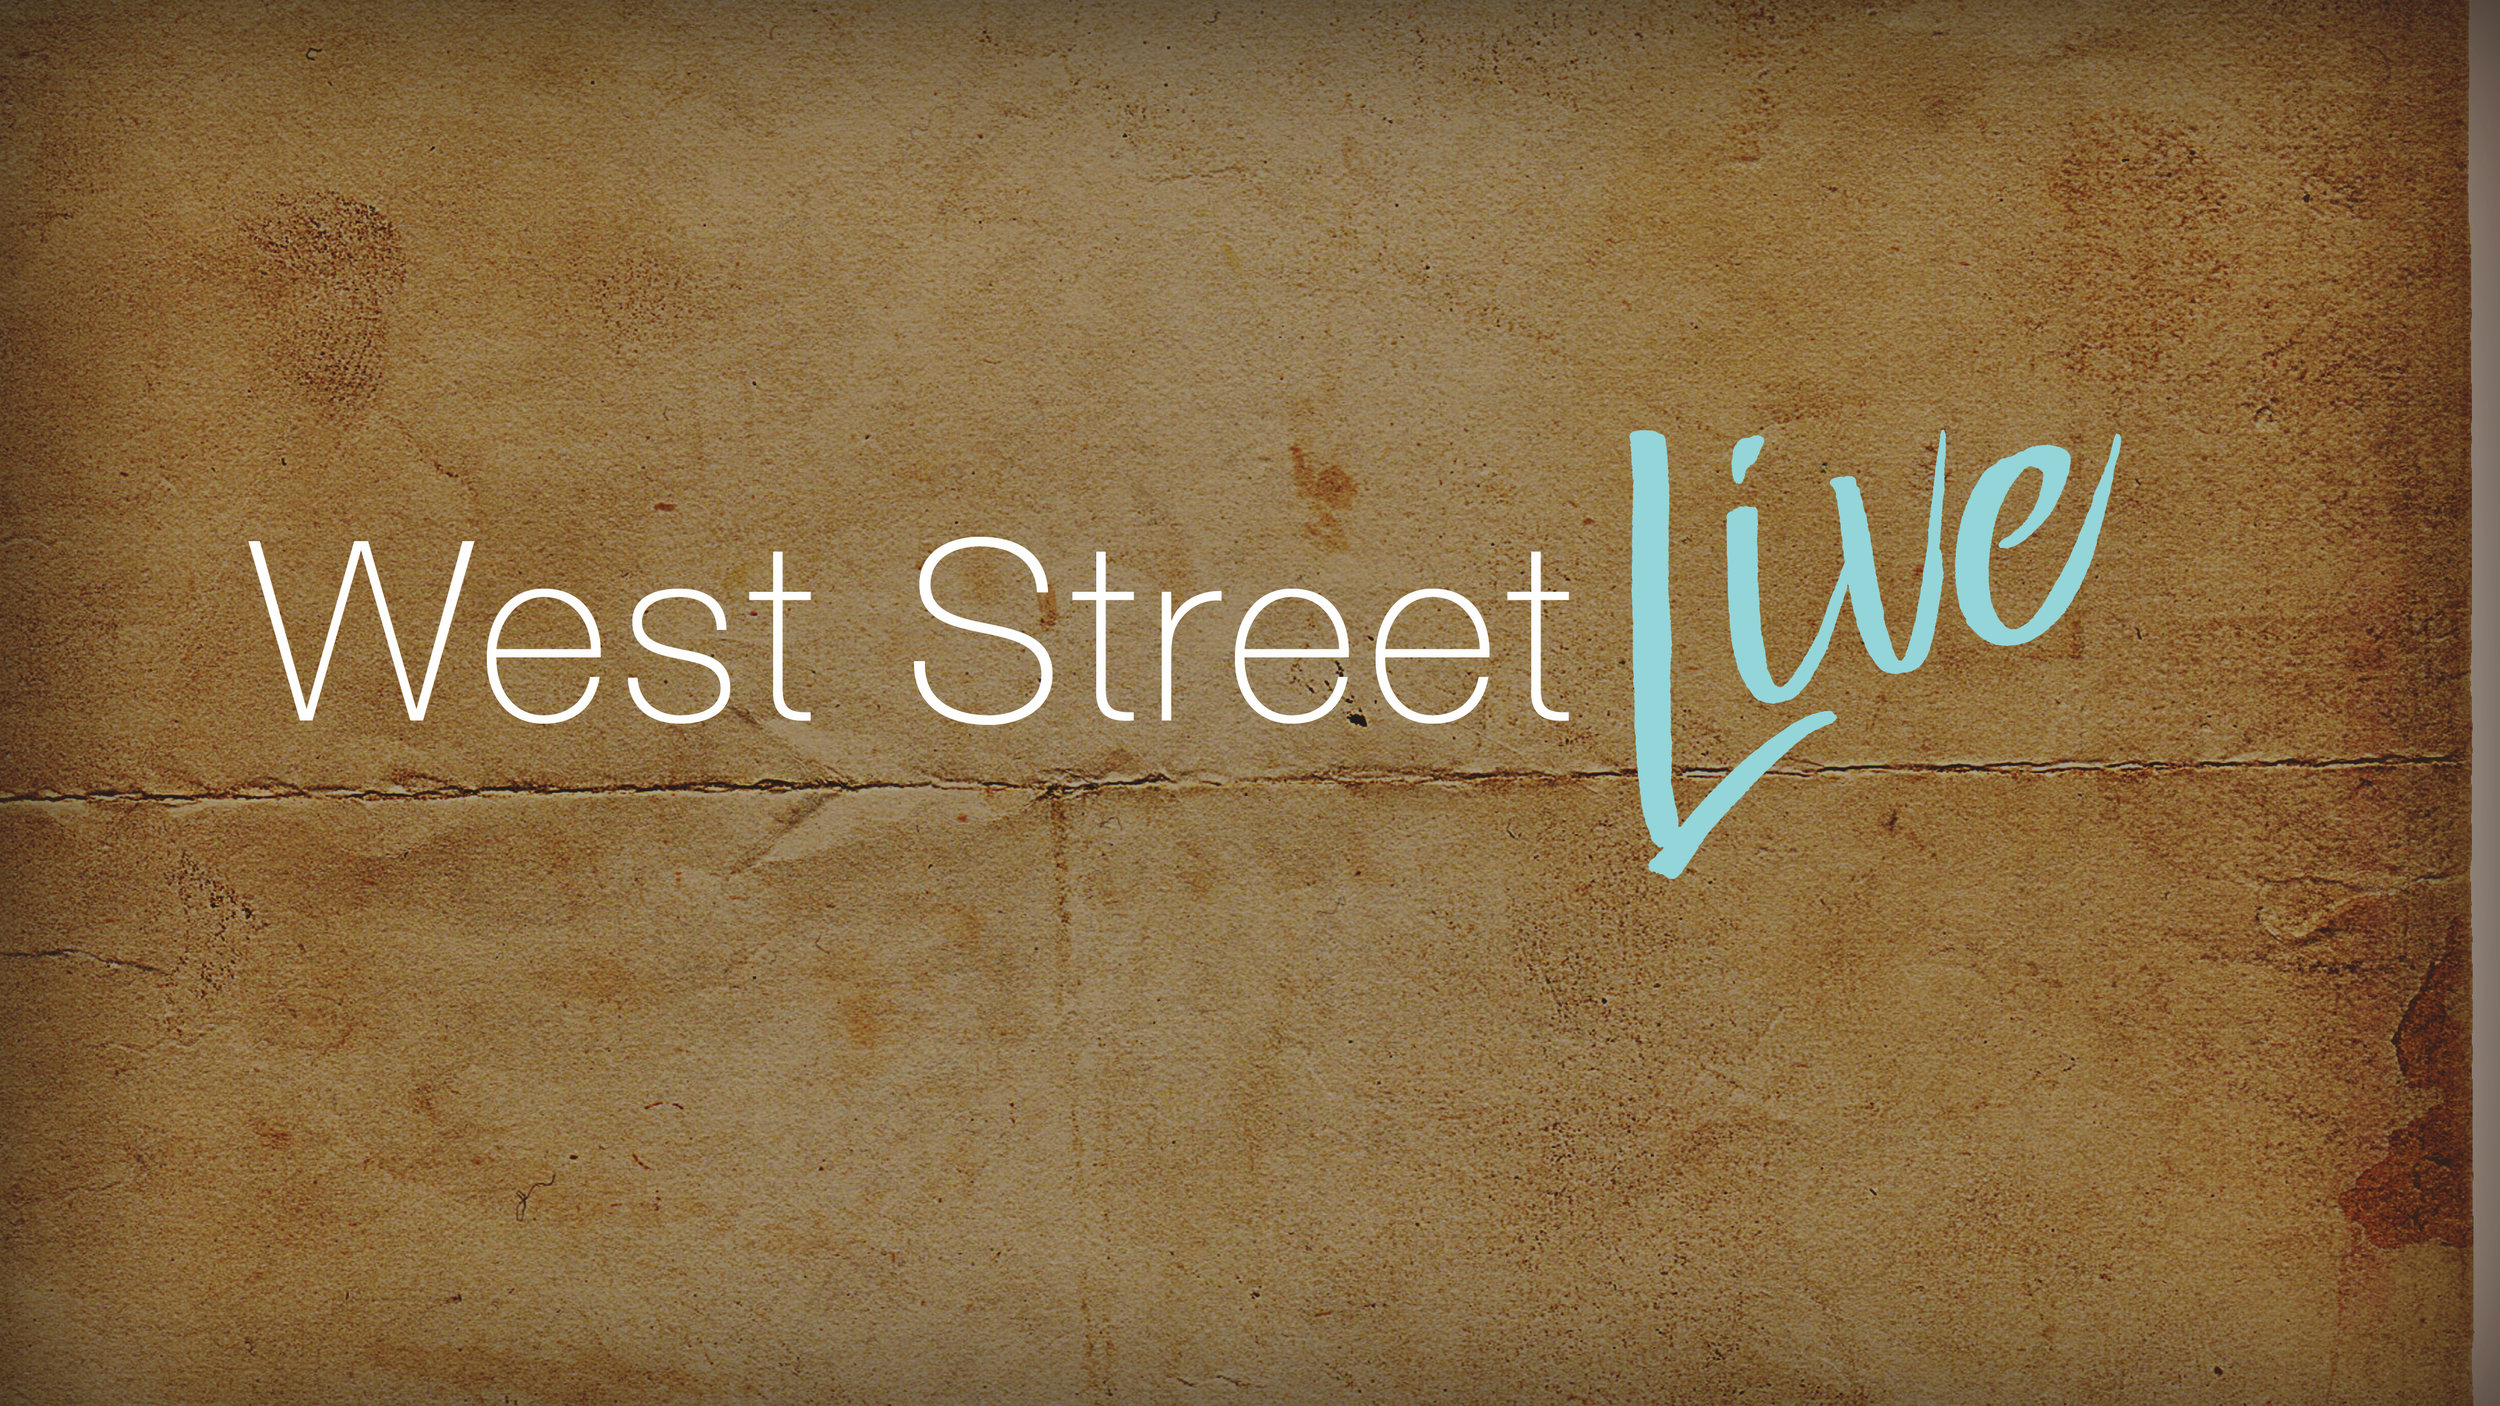 West Street Live at Walton Arts Center - A West Street Live subscription will reserve your seat at all these shows at the best price. Purchase one today.